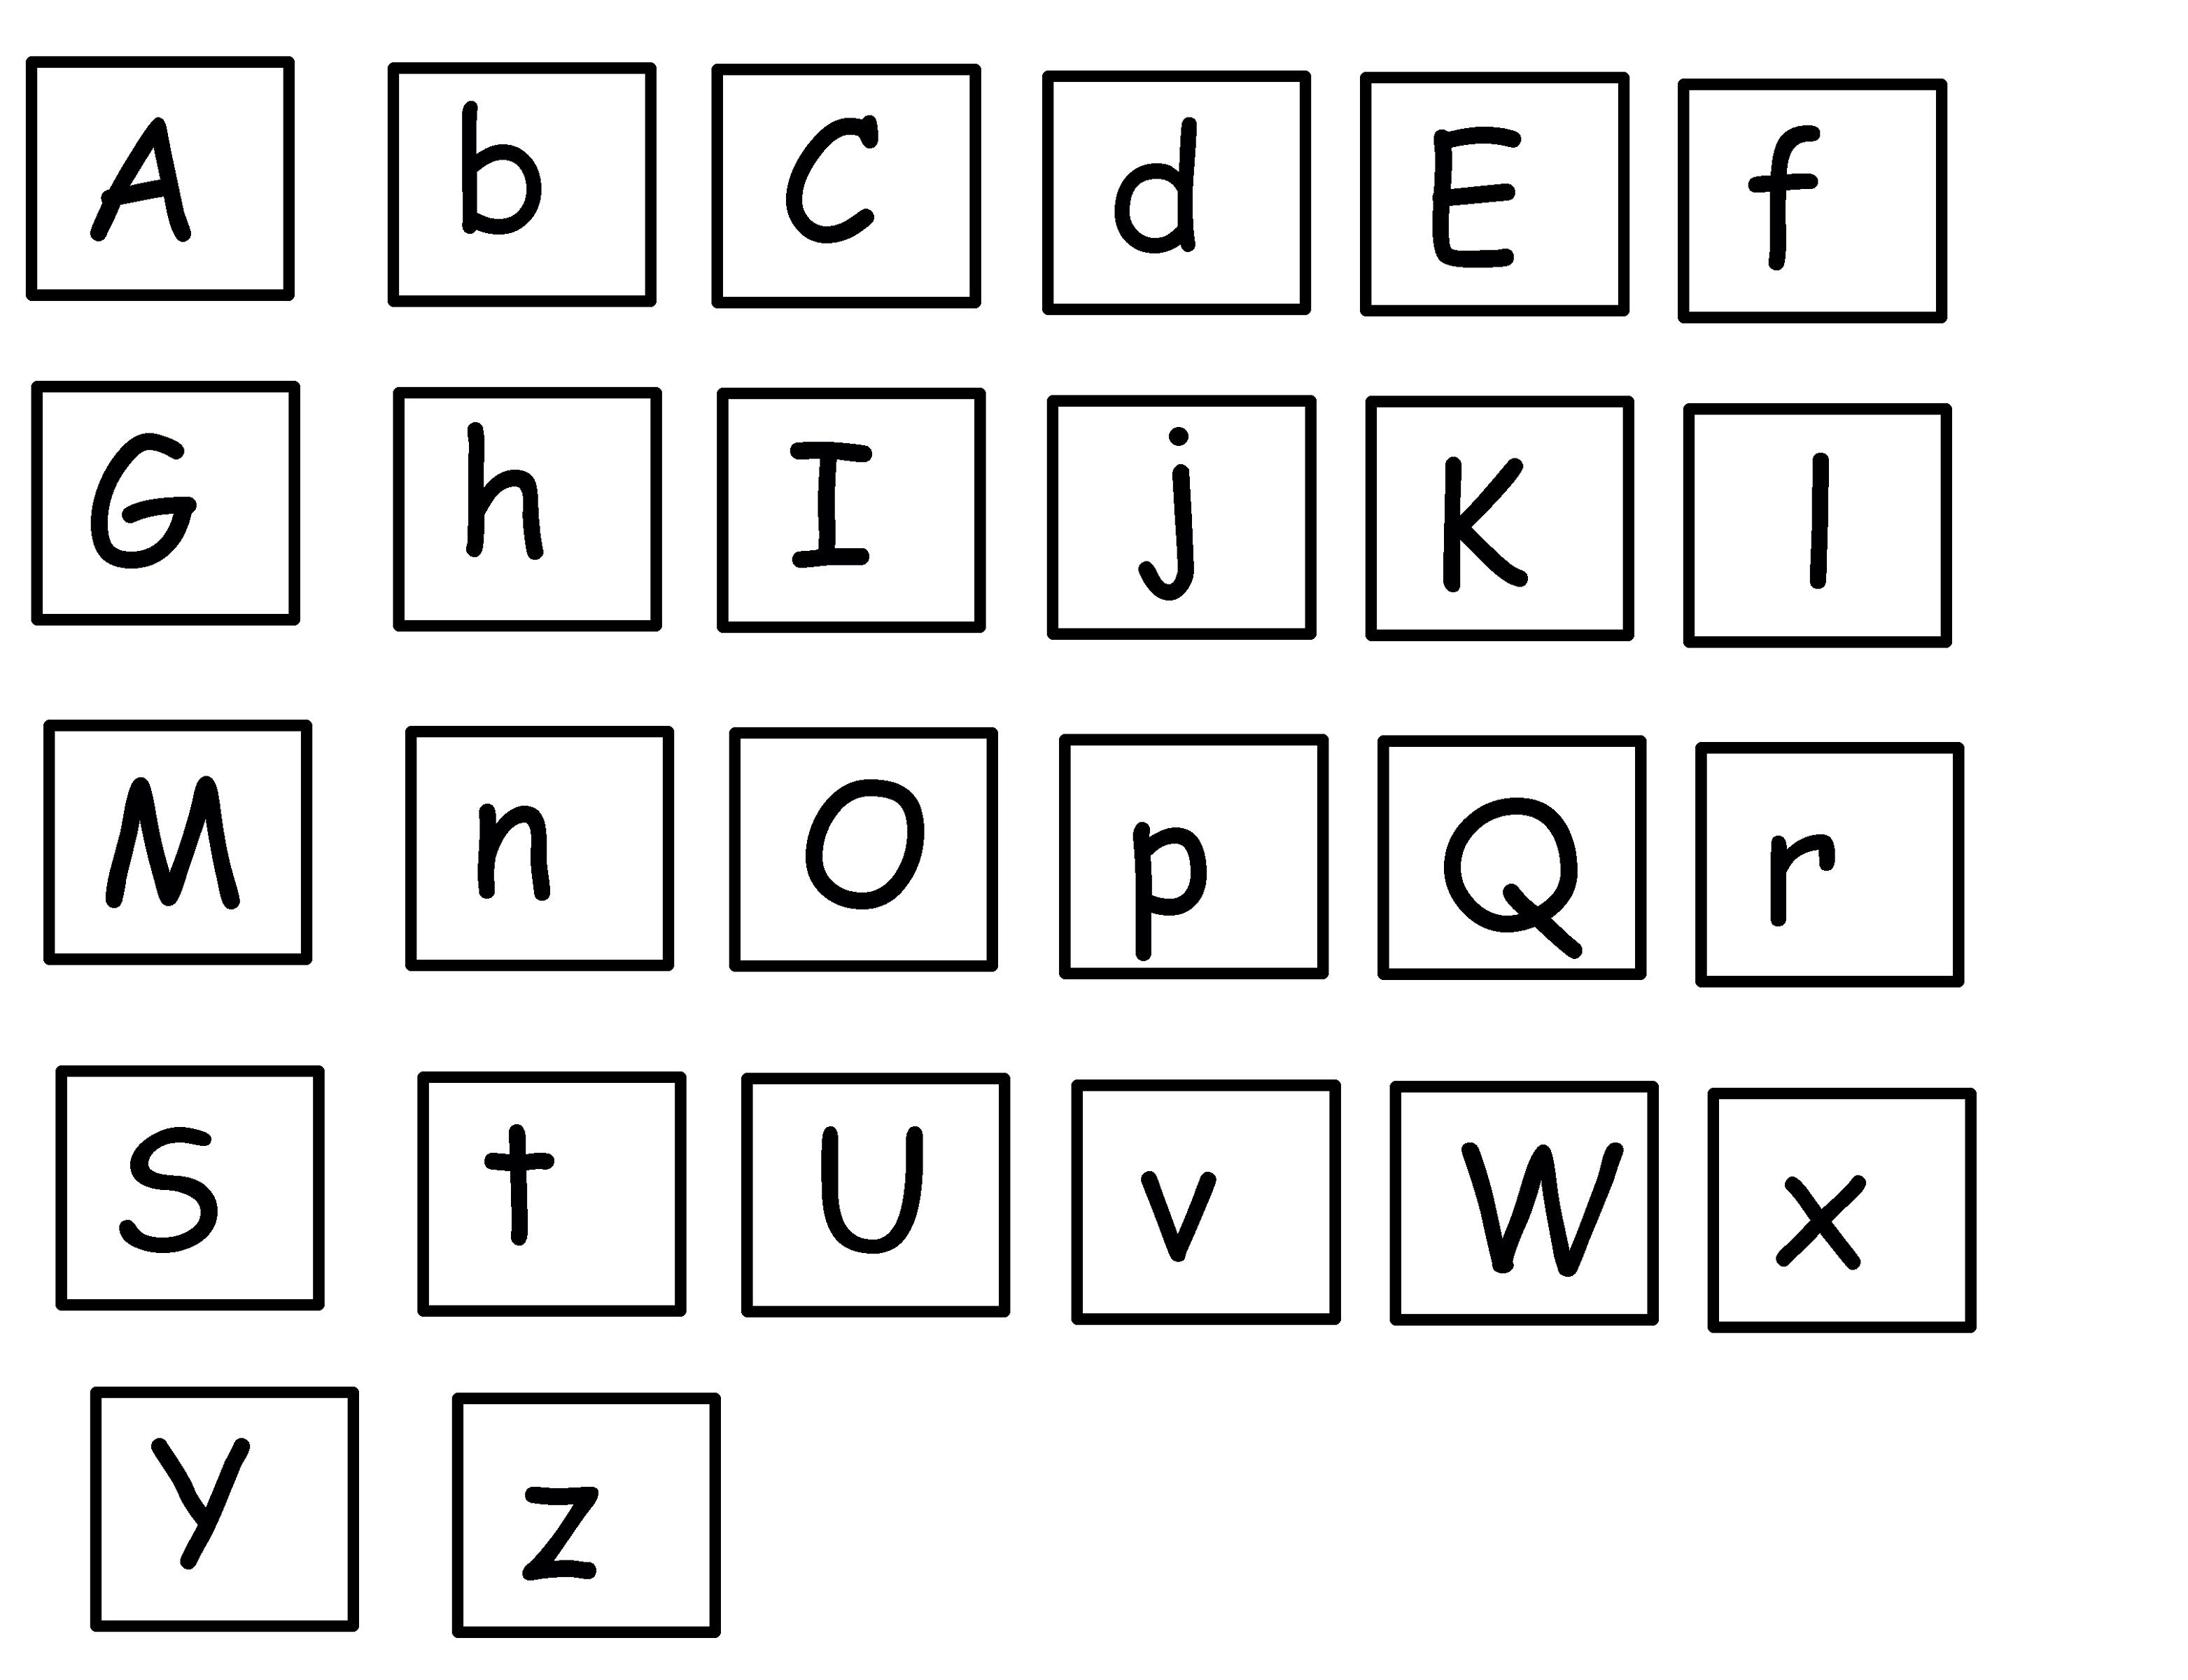 uppercase and lowercase letters A-Z